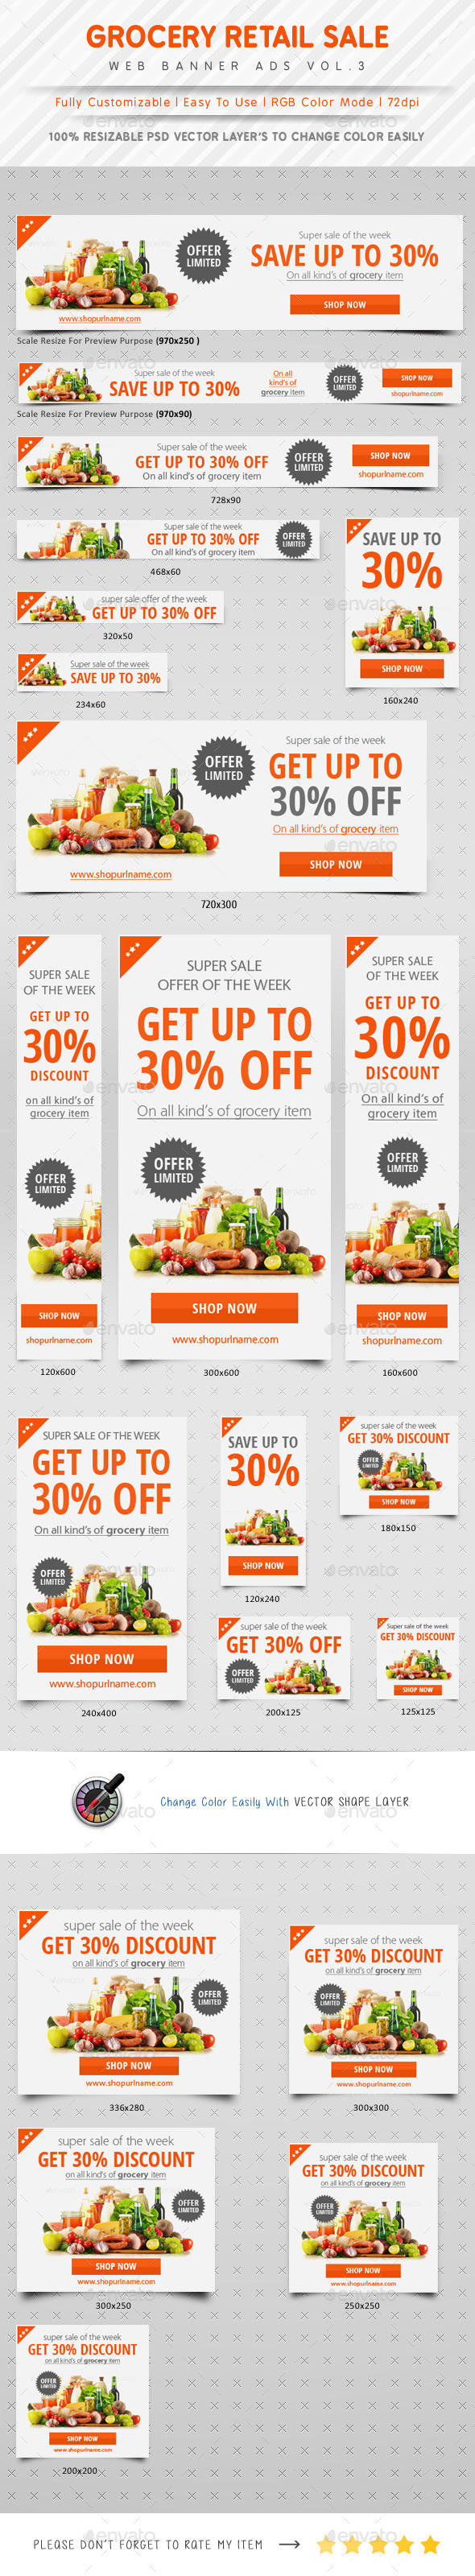 Grocery Retail Sale Web Banner Ads - Banners & Ads Web Elements